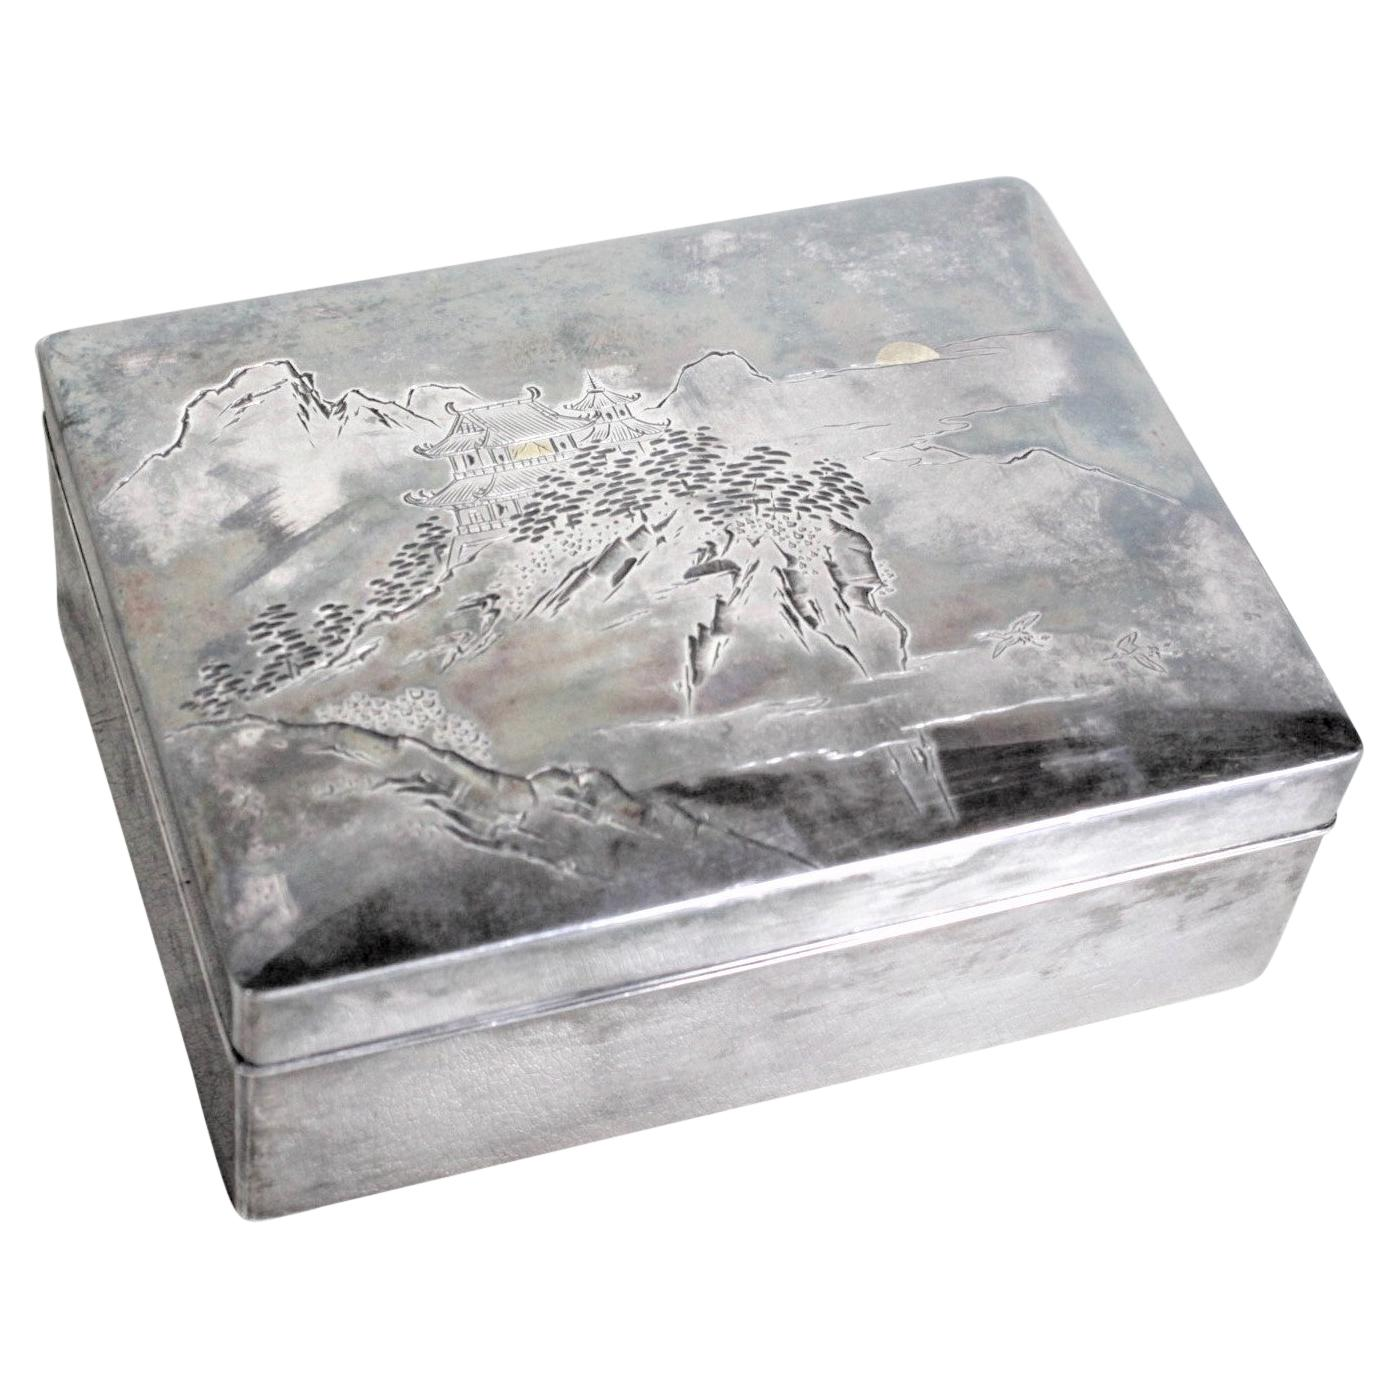 Antique Sterling Silver Japanese Export Engraved Cigarette or Decorative Box